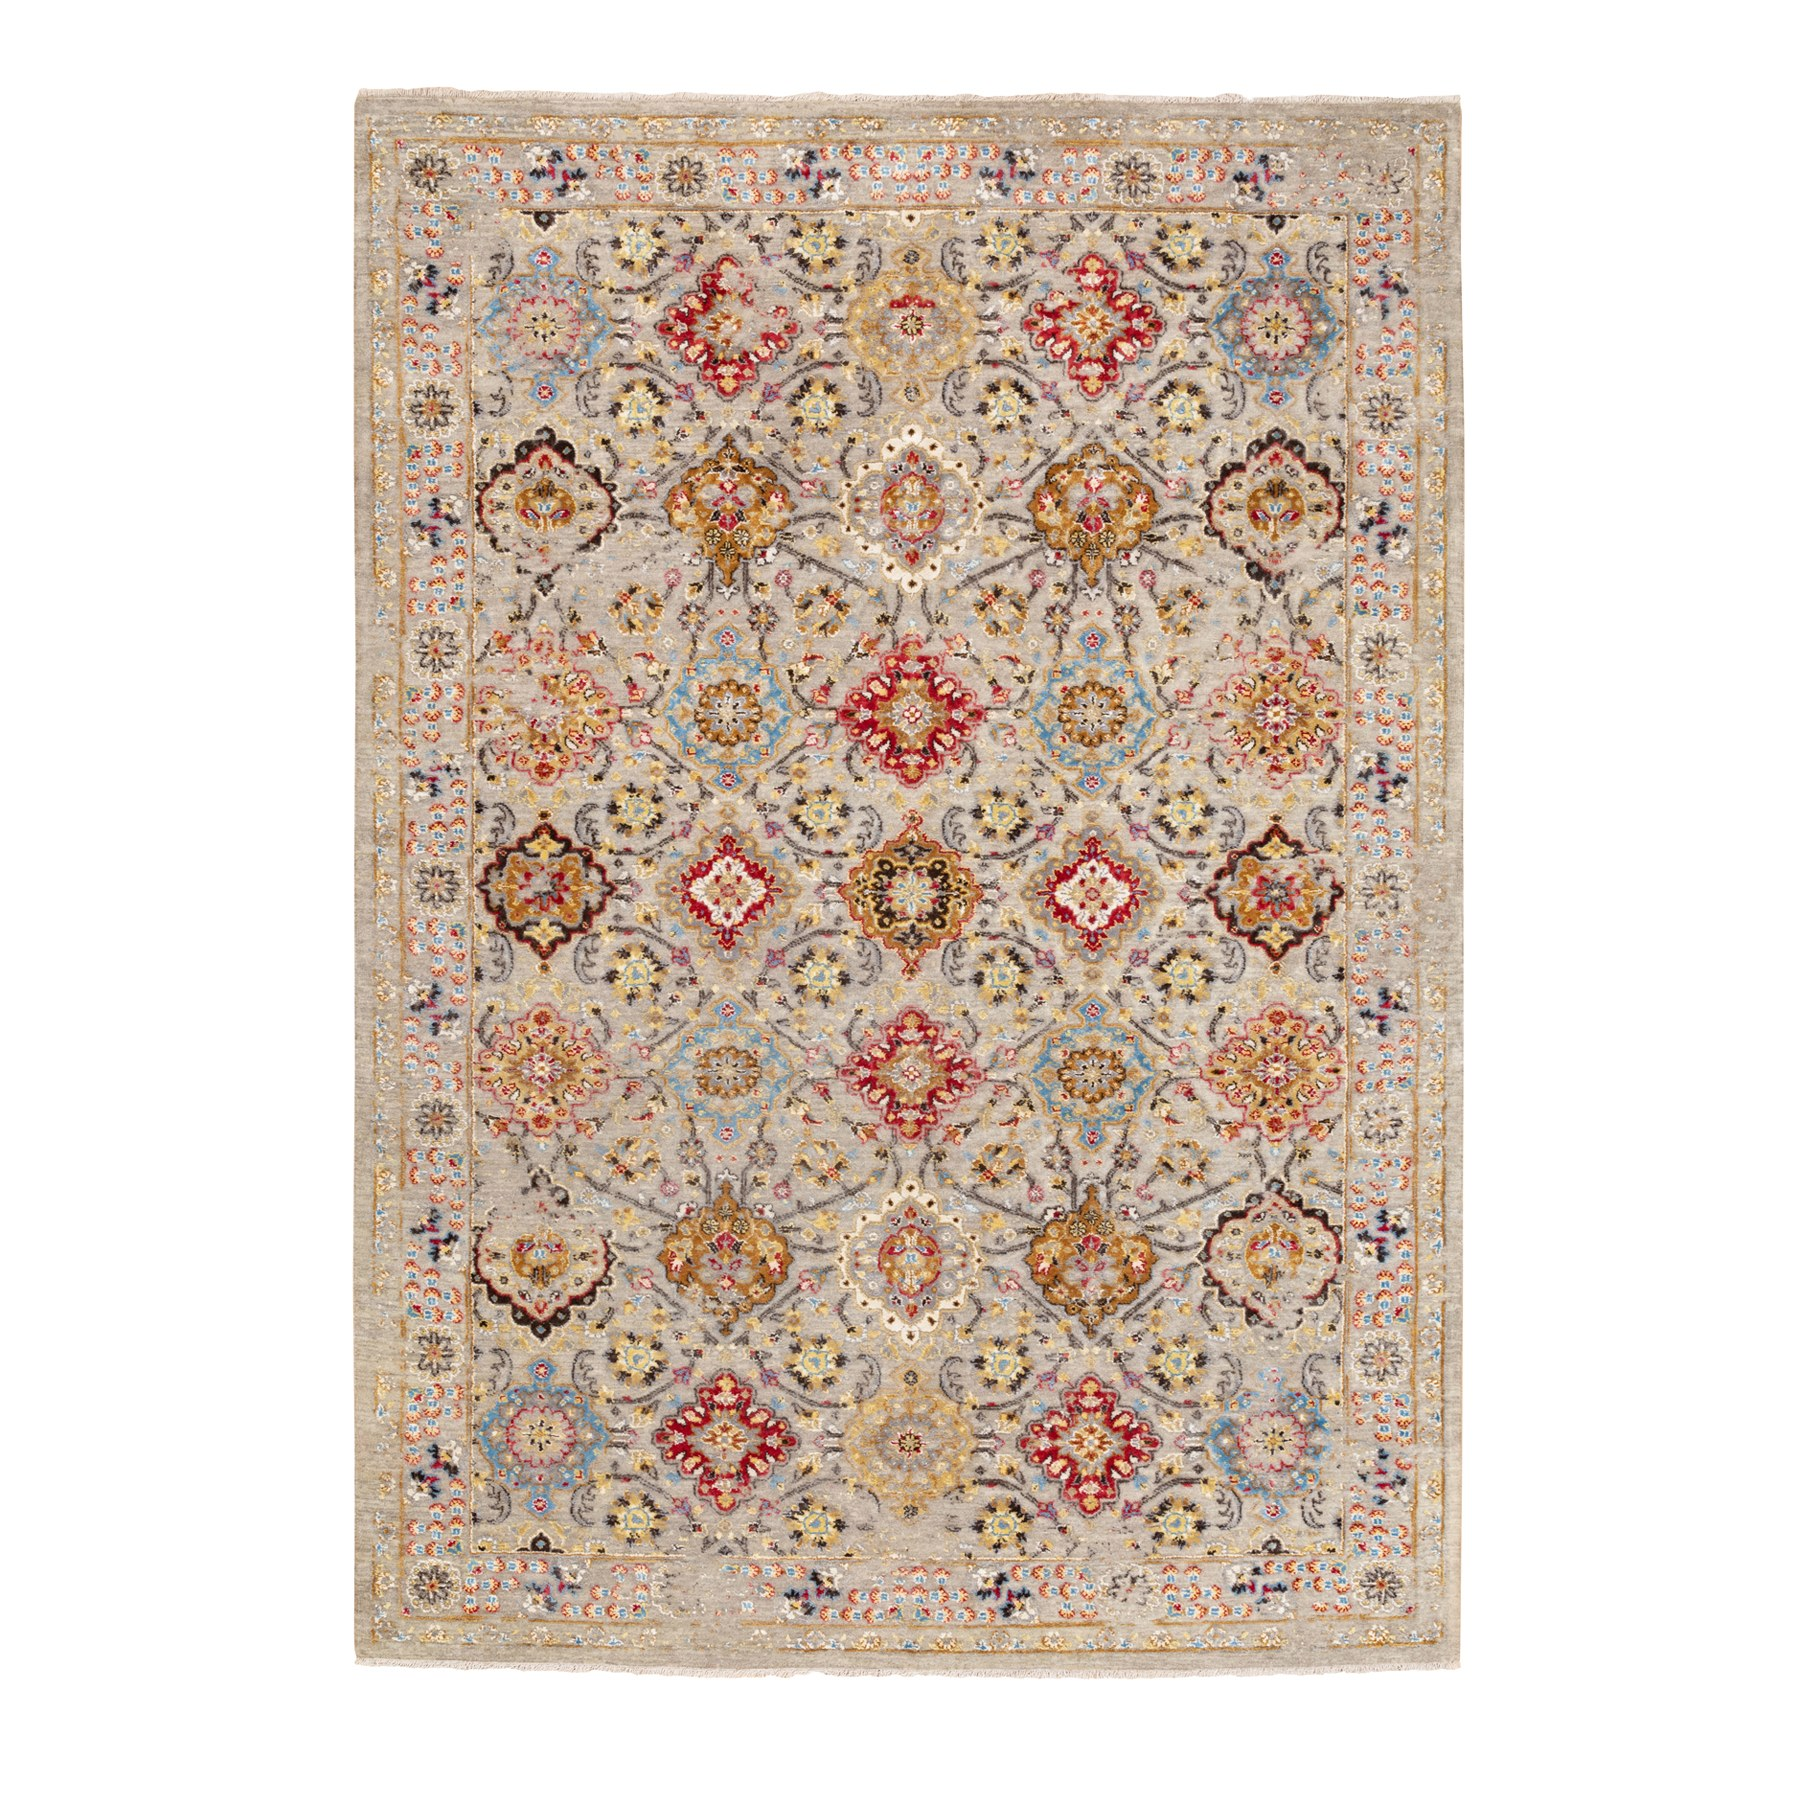 """6'1""""x9' THE SUNSET ROSETTES Wool And Pure Silk Hand Knotted Oriental Rug"""